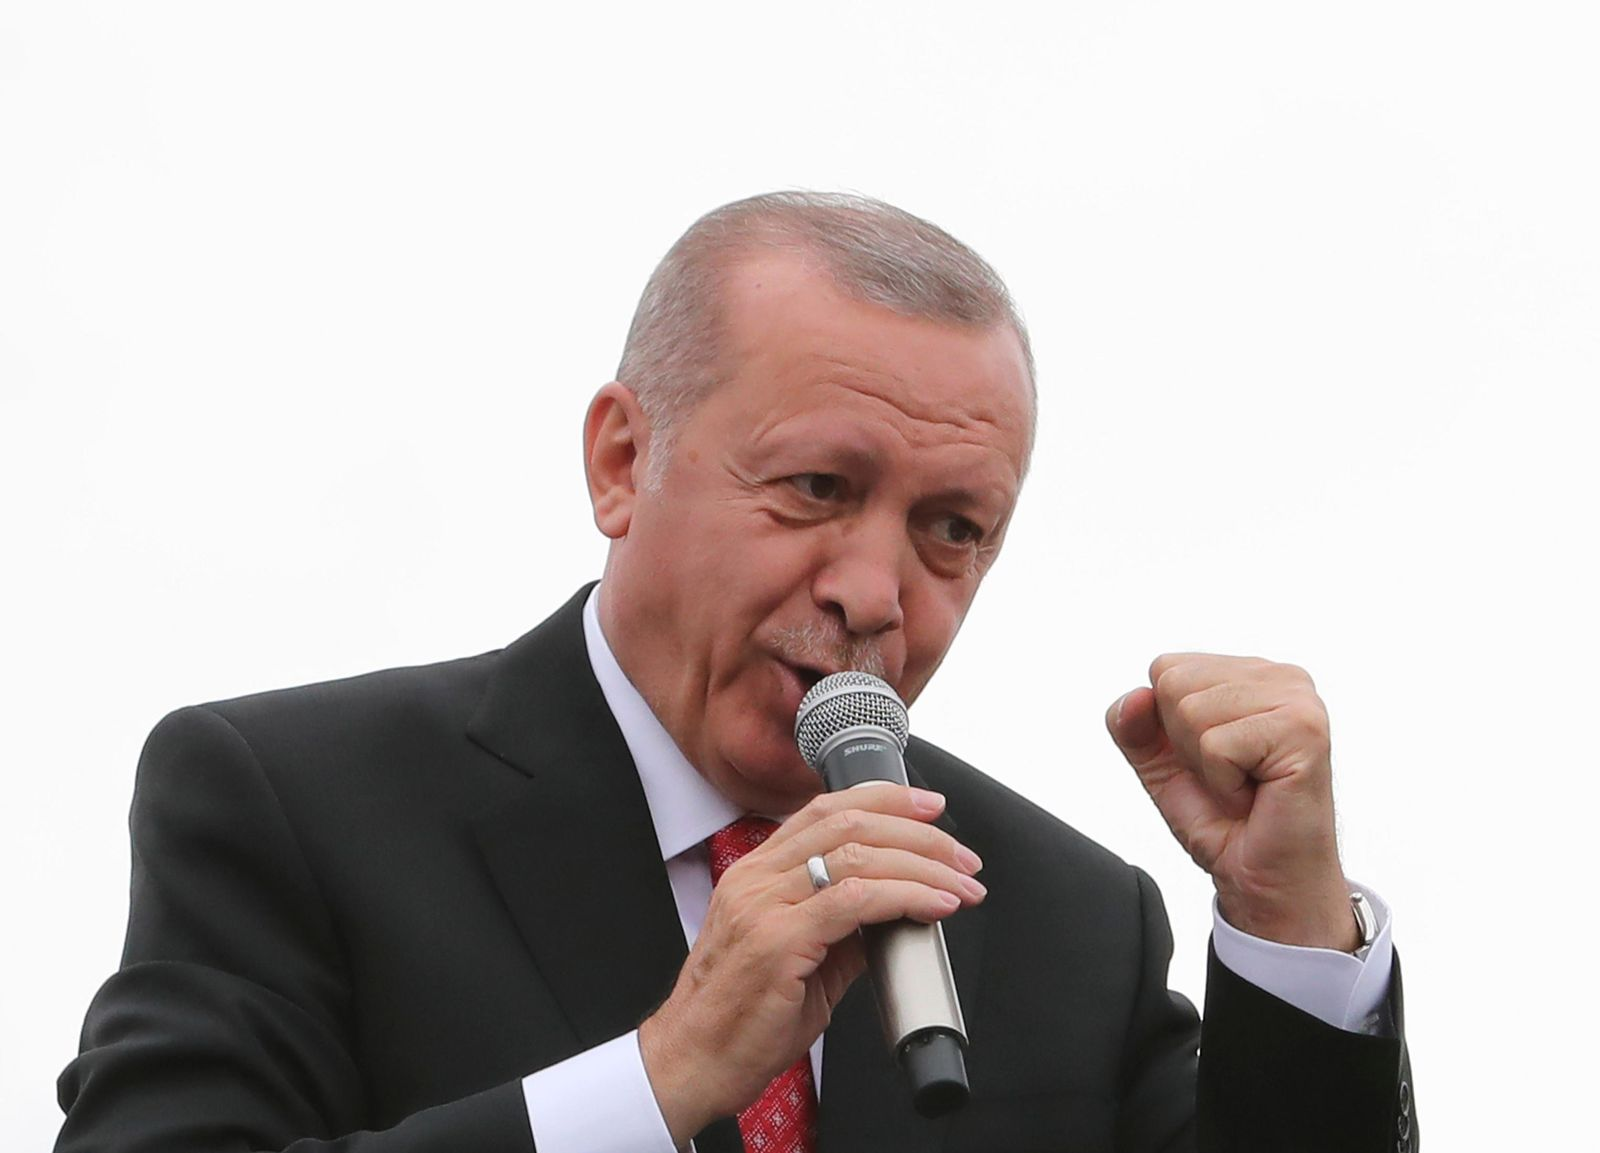 Turkey's President Recep Tayyip Erdogan, gestures as he talks during a campaign rally in Istanbul for the June 23 re-run of Istanbul elections, Wednesday, June 19, 2019.{ } (Presidential Press Service via AP, Pool)